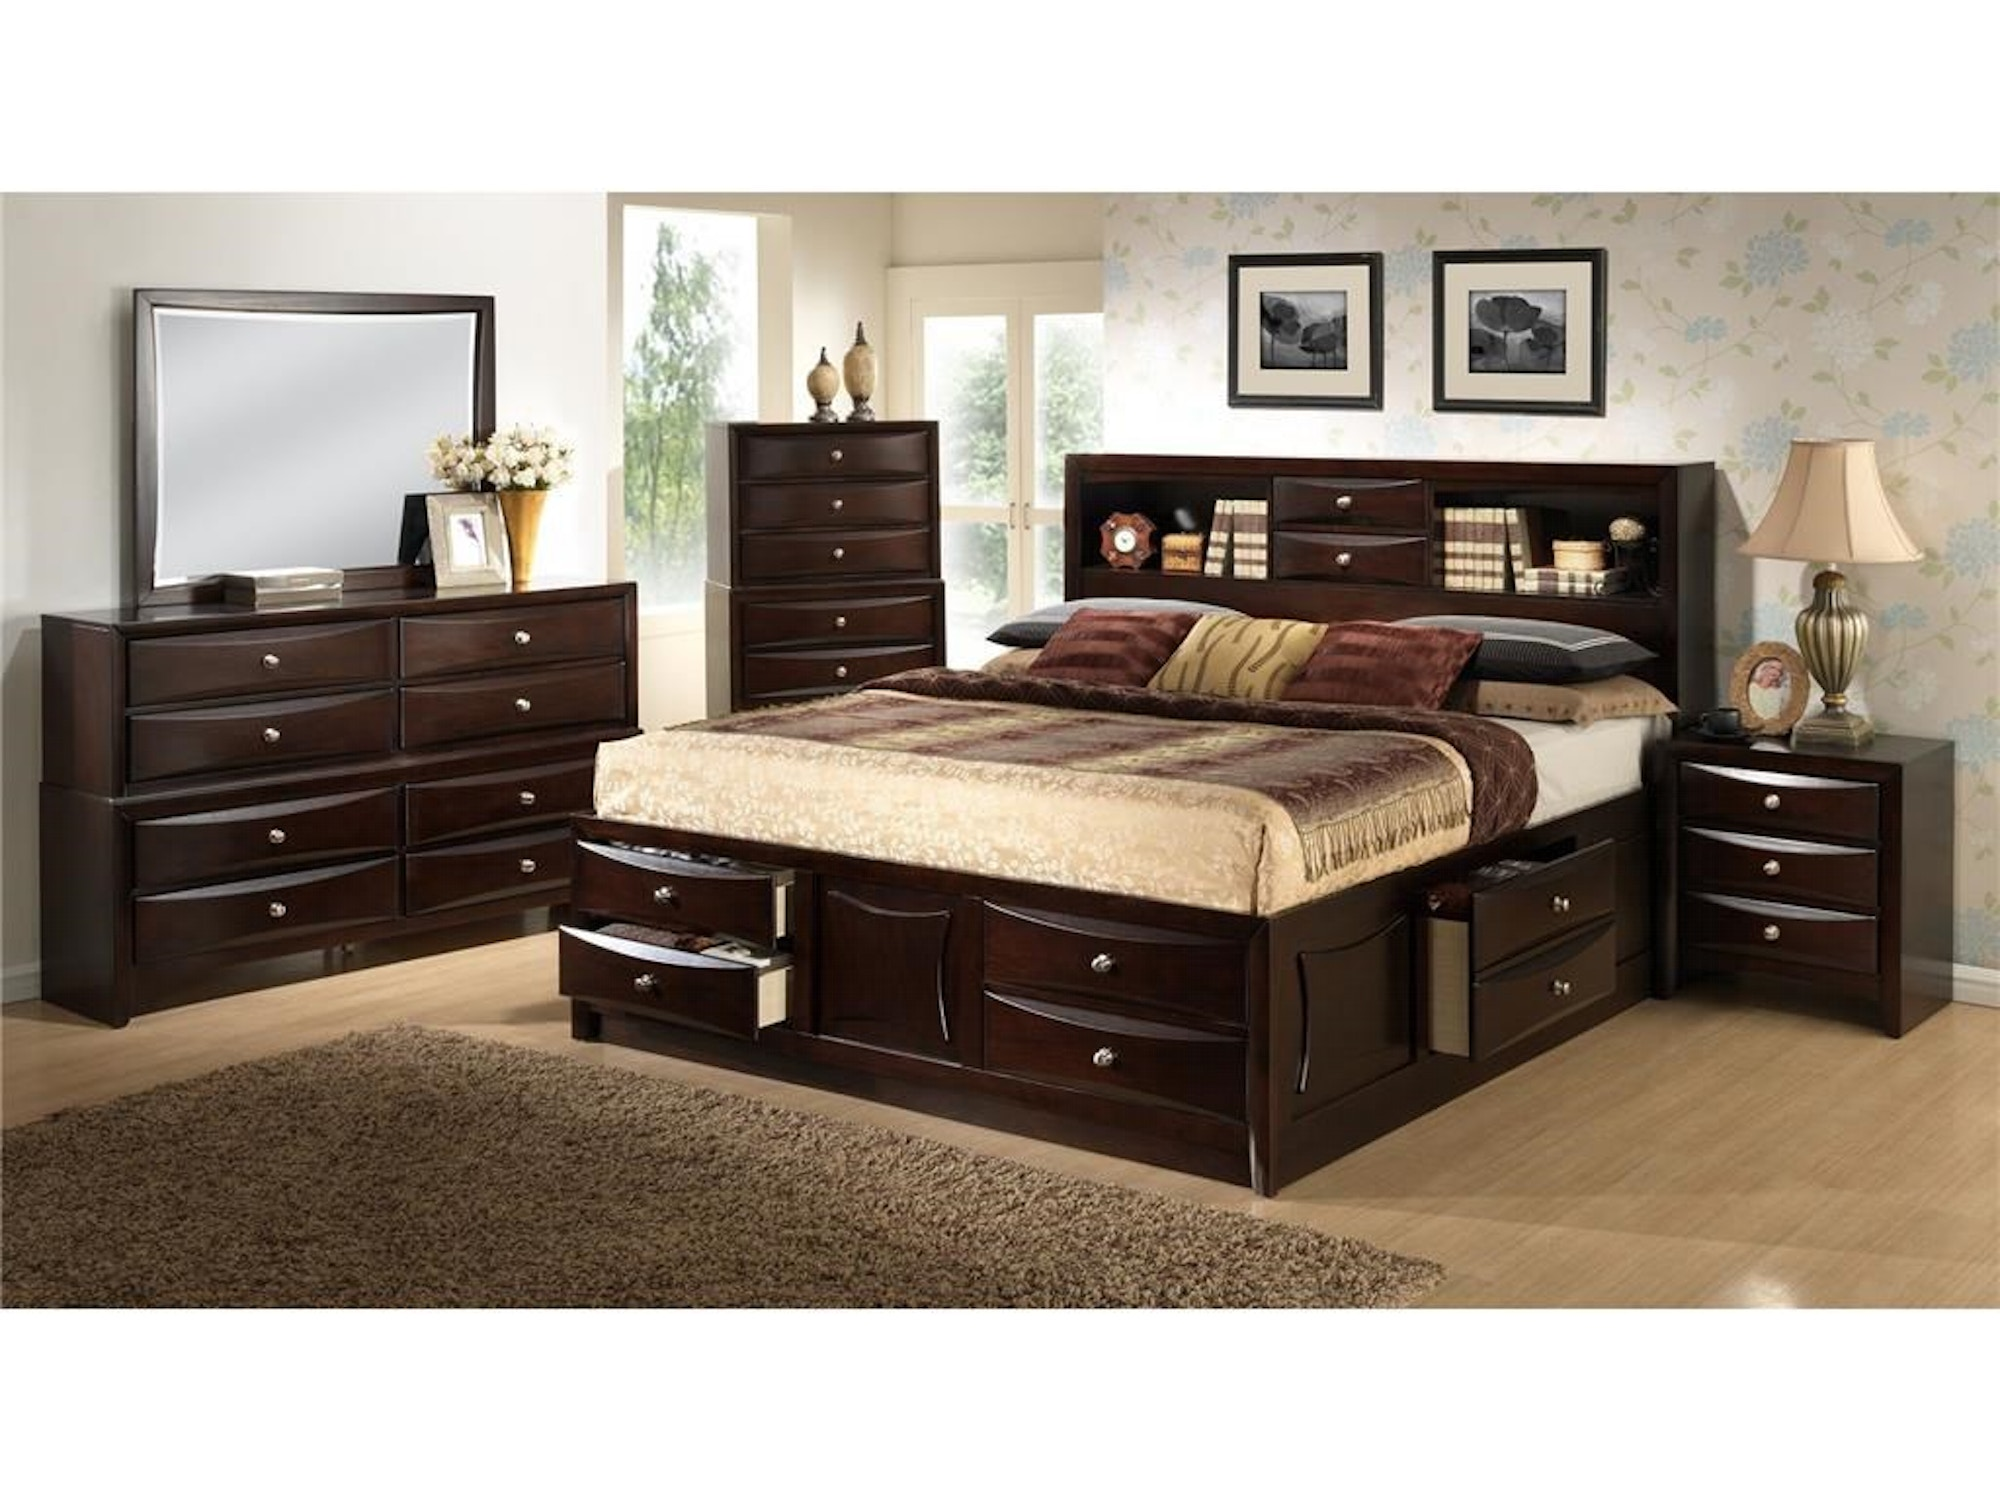 Davida Storage Bed - Queen 846168